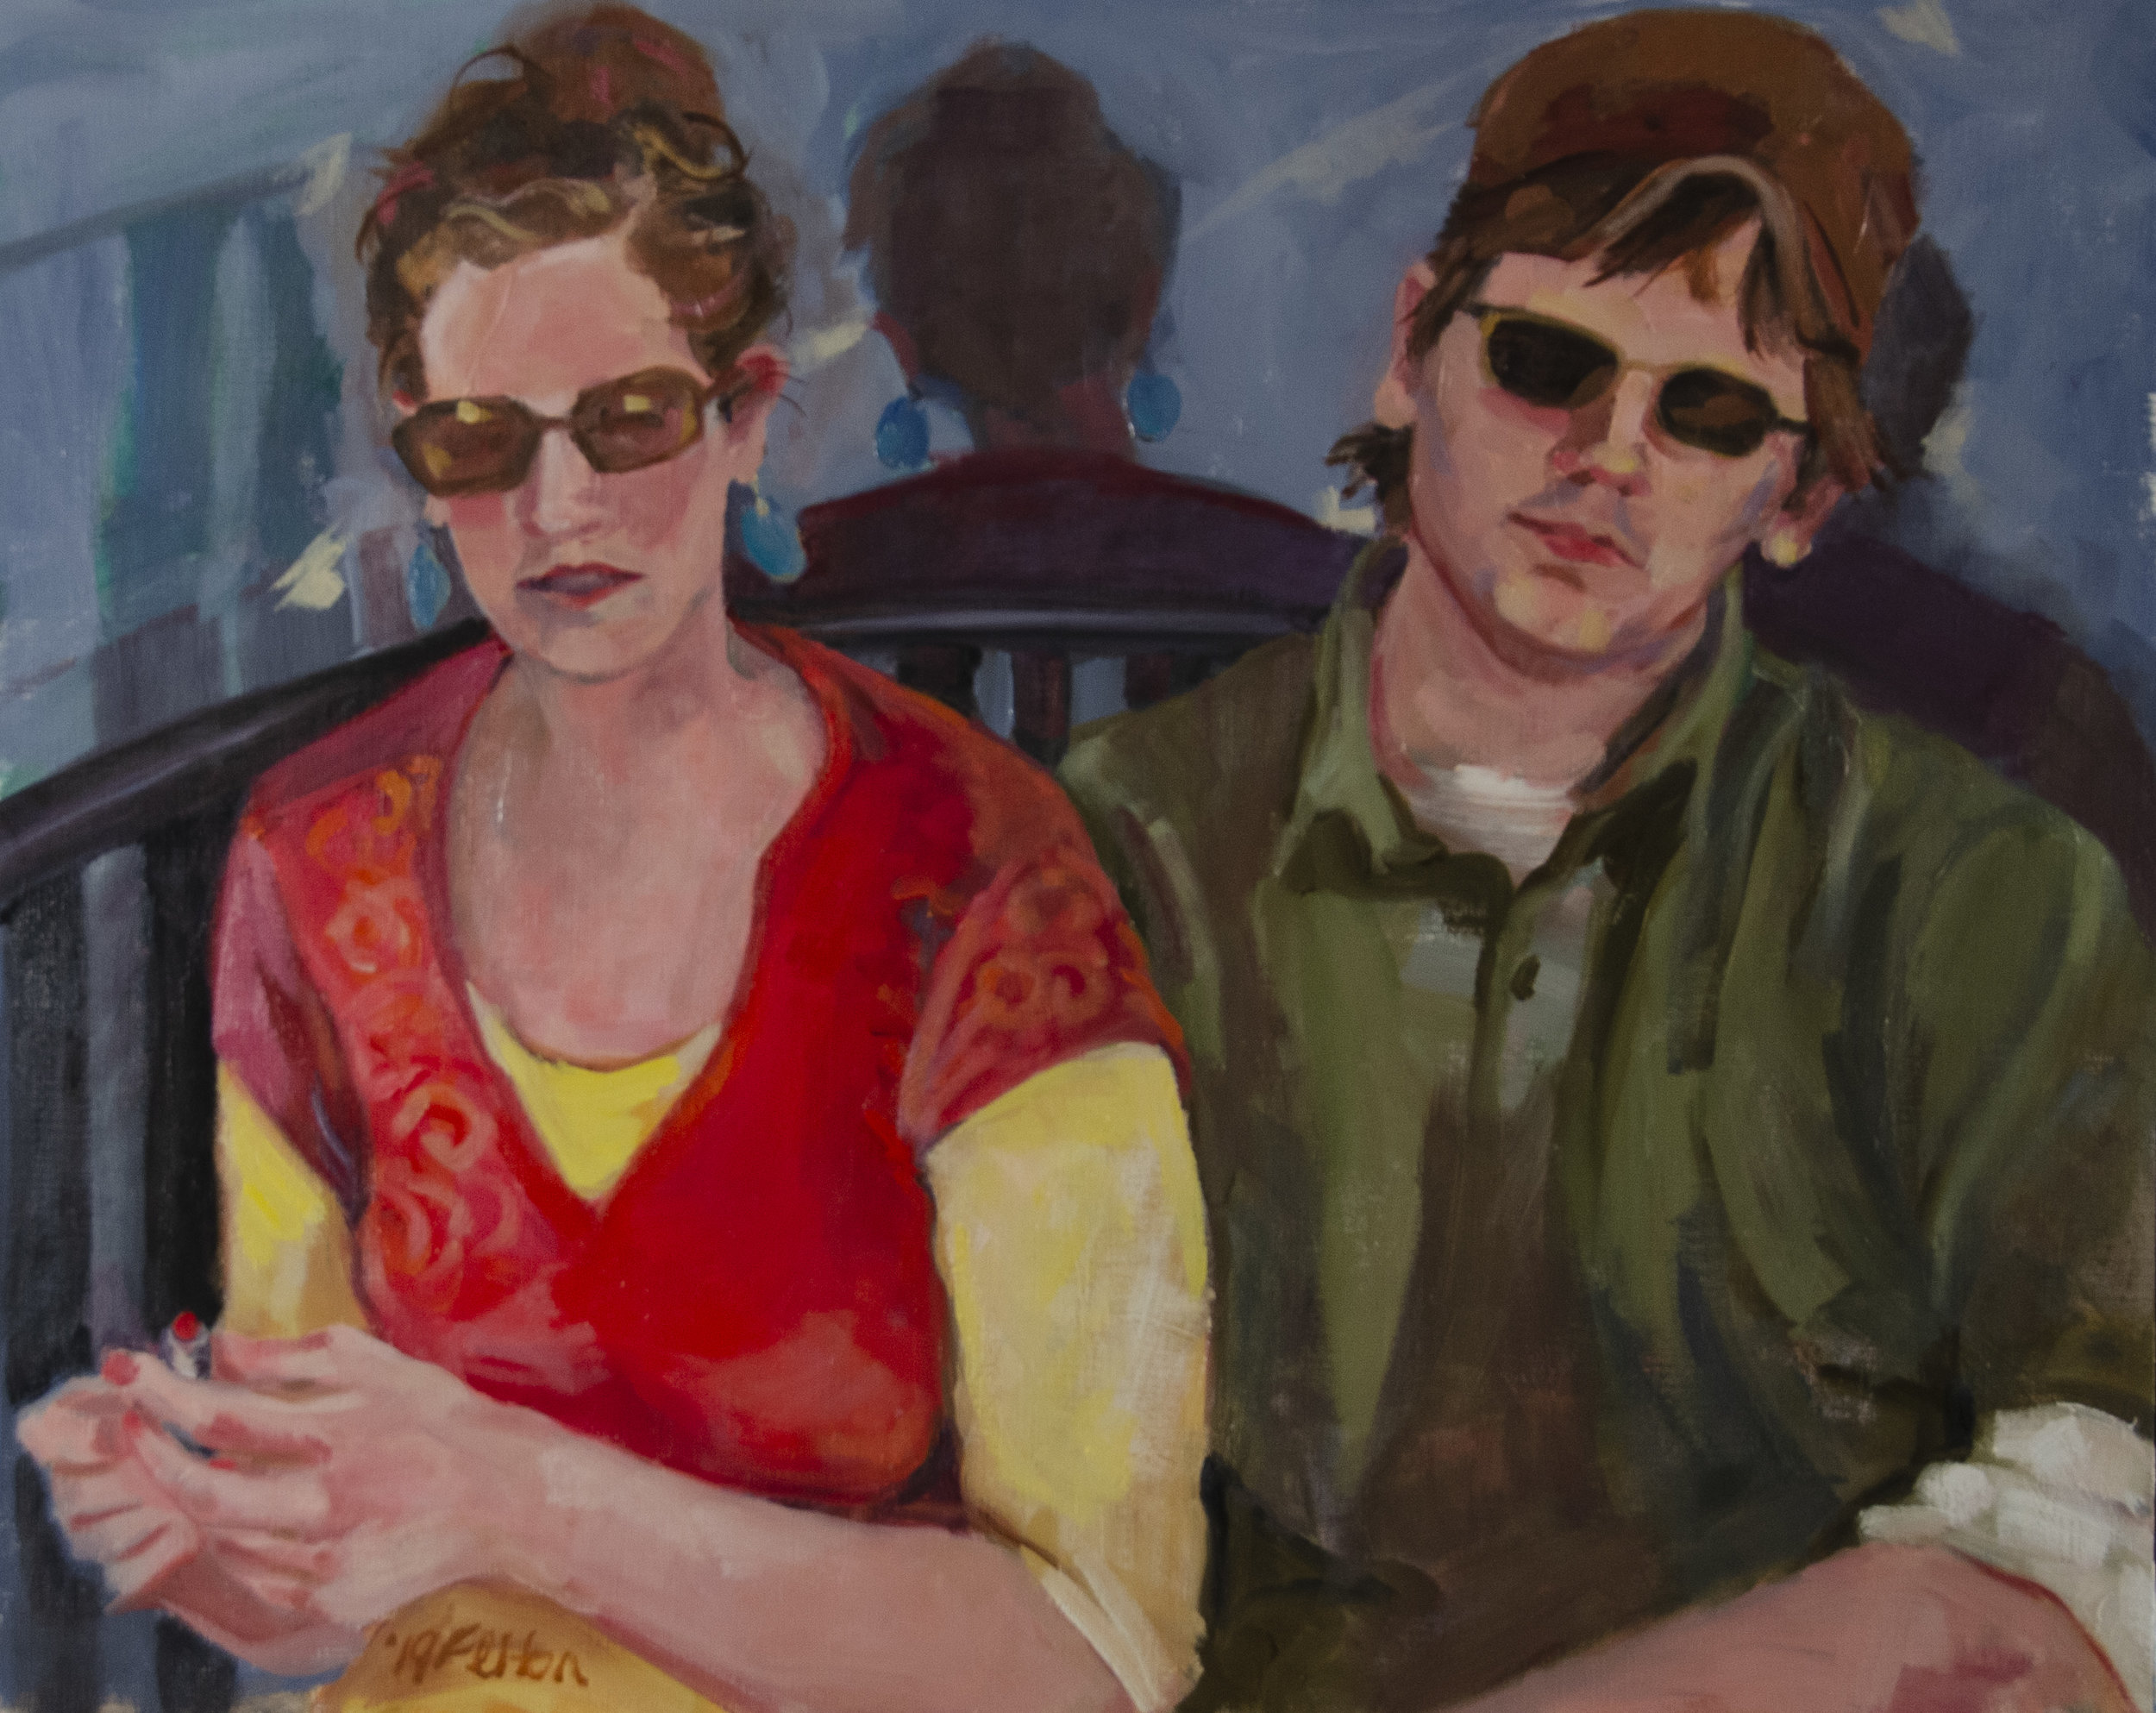 Waiting for a Table is showing at Summer Serendipity! - Johns Creek Arts Center